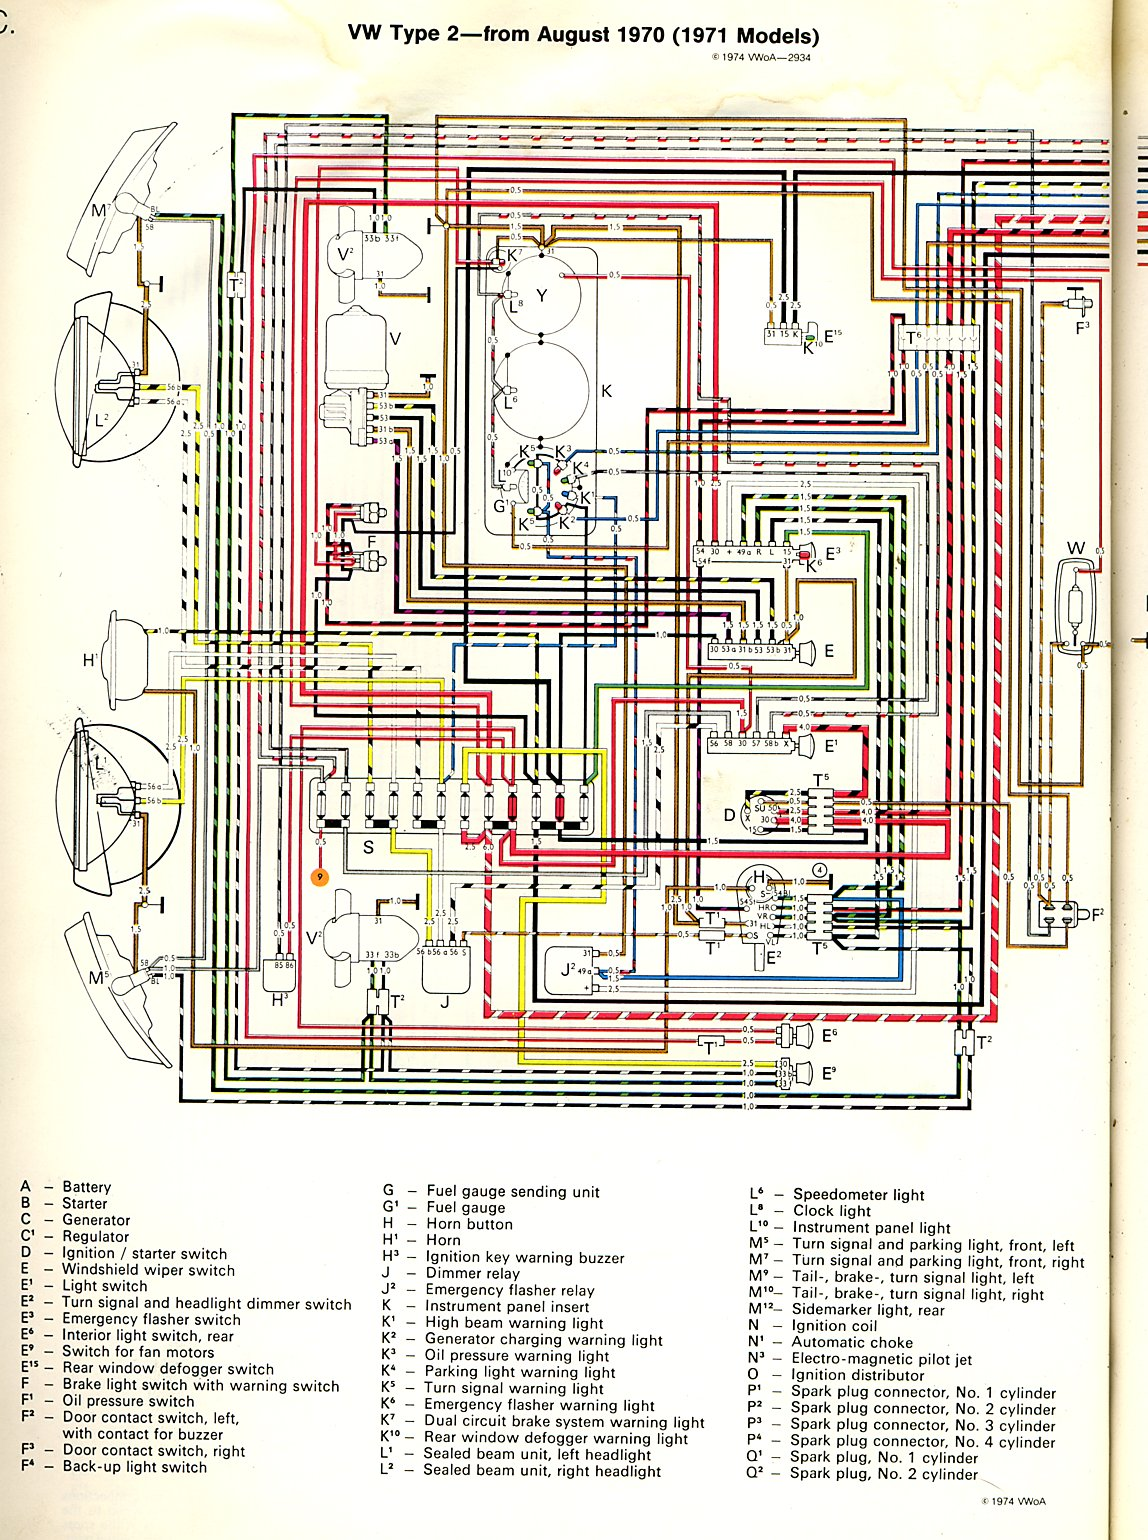 baybus_71a 71 vw bus wiring diagram 1970 vw bus fuse box diagram \u2022 wiring Wiring Harness Diagram at fashall.co